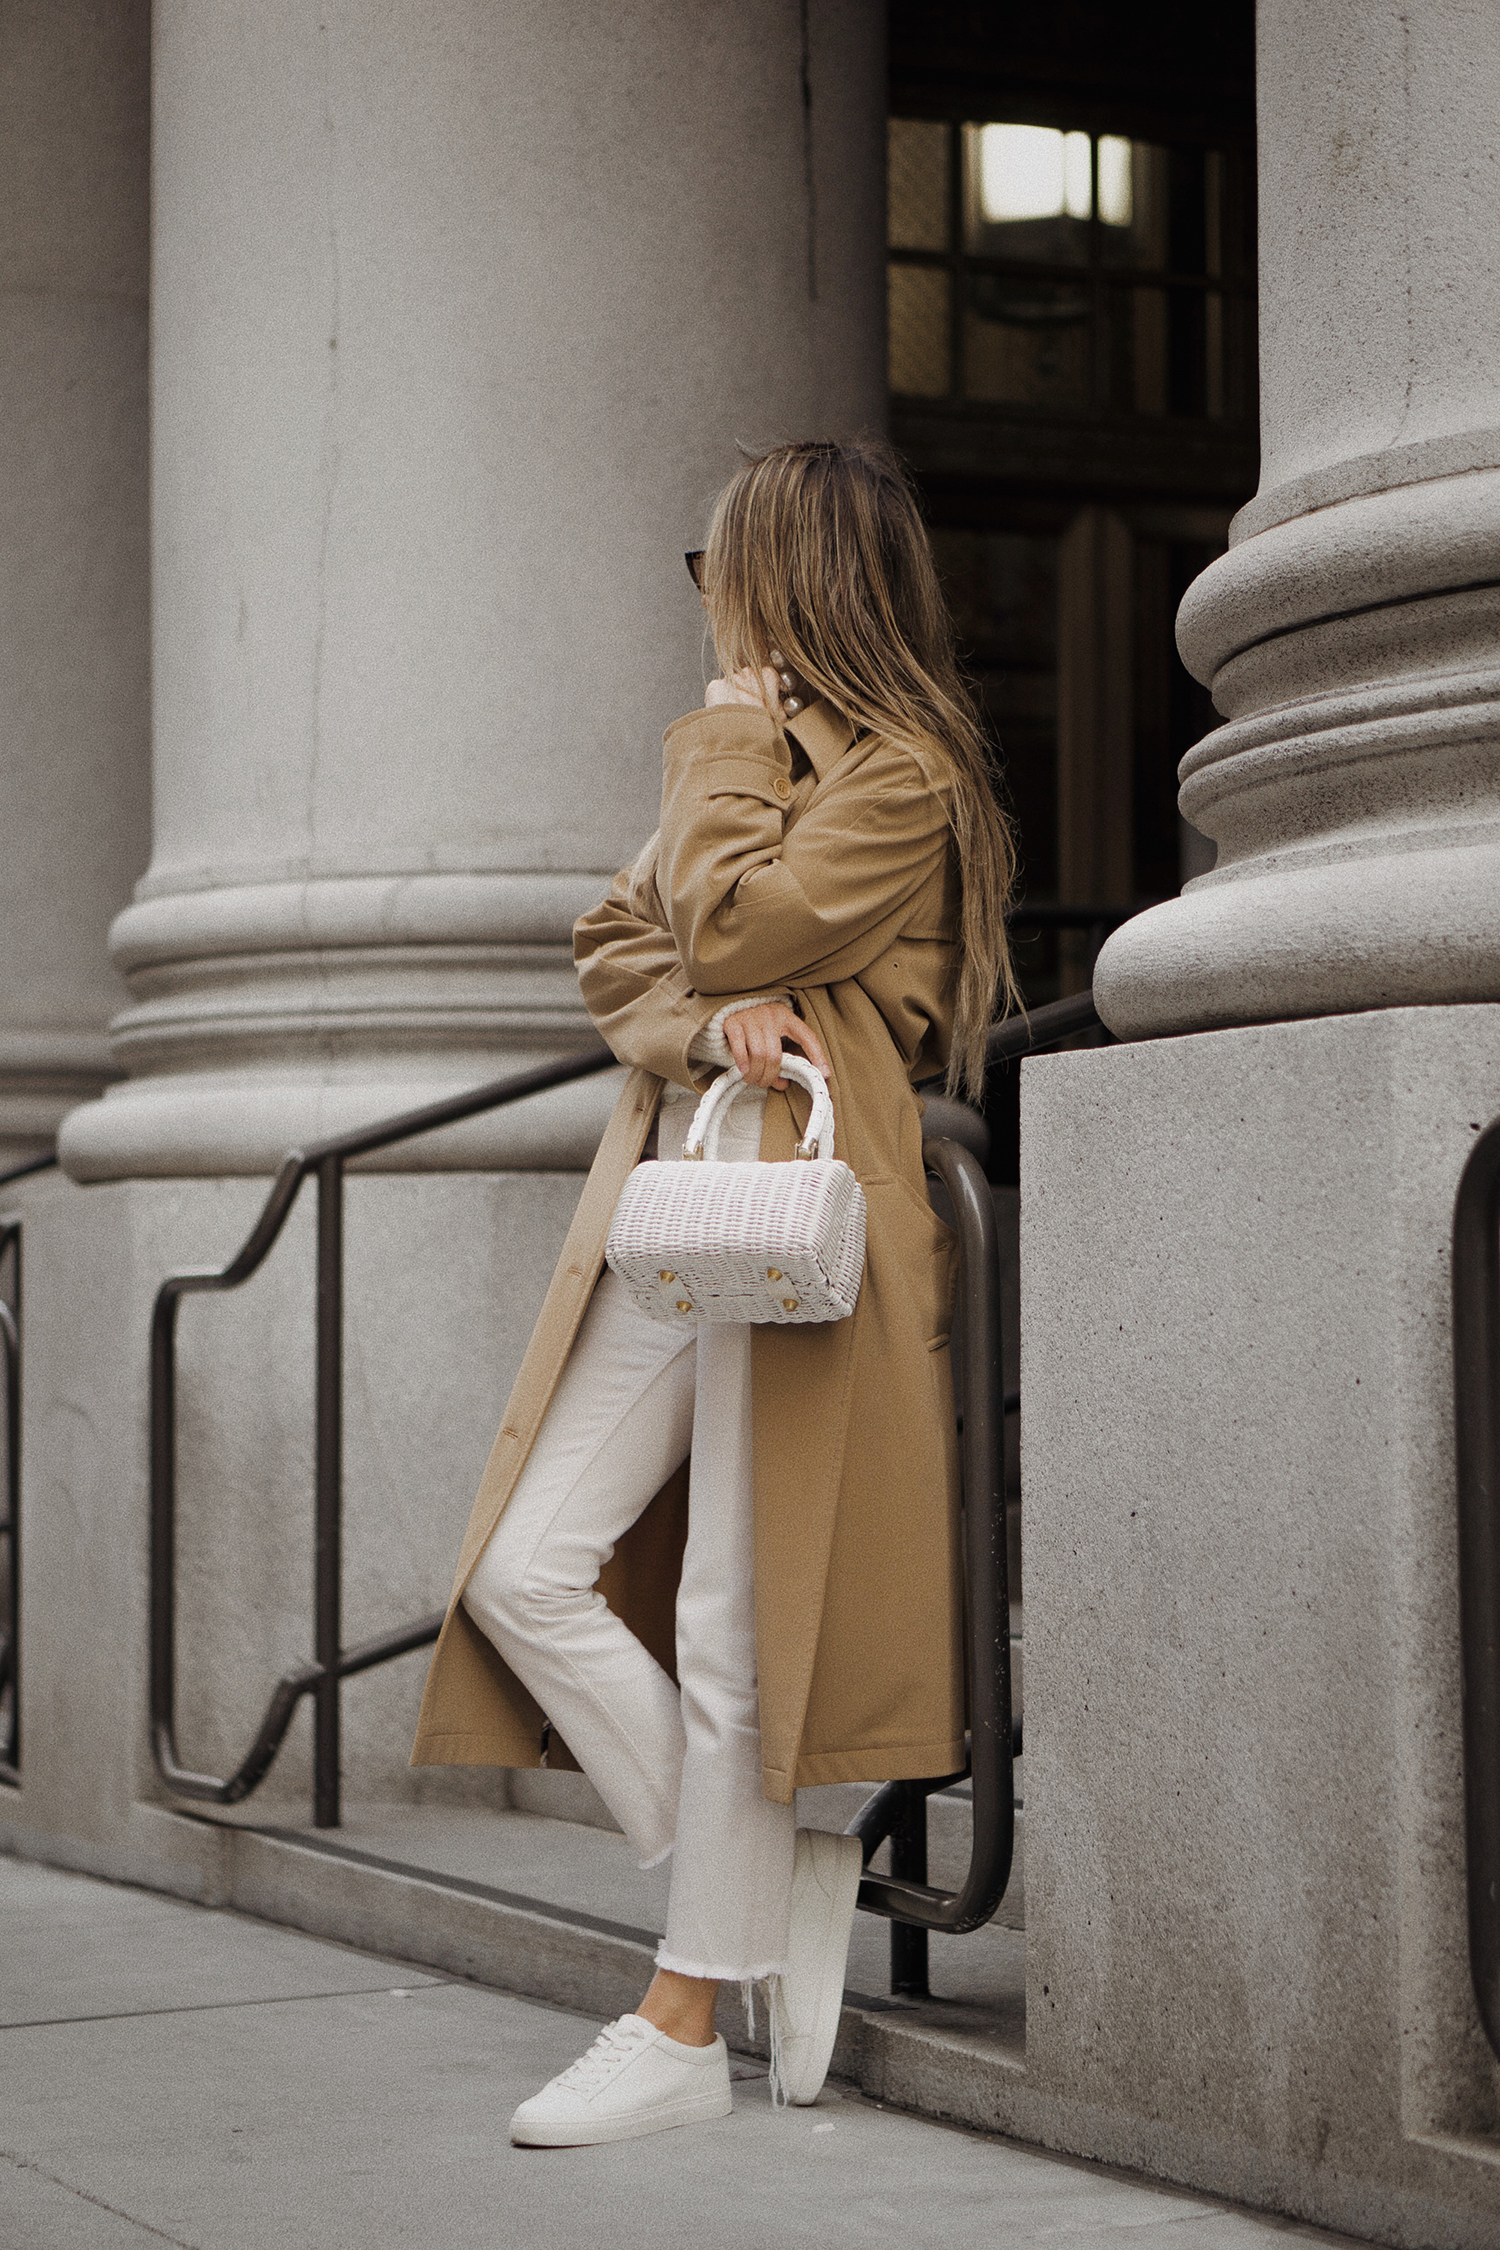 paulsmith_trenchcoat_vinceshoes_wicker_bag_white_outfit_freepeople_lenajuice_thewhiteocean_09